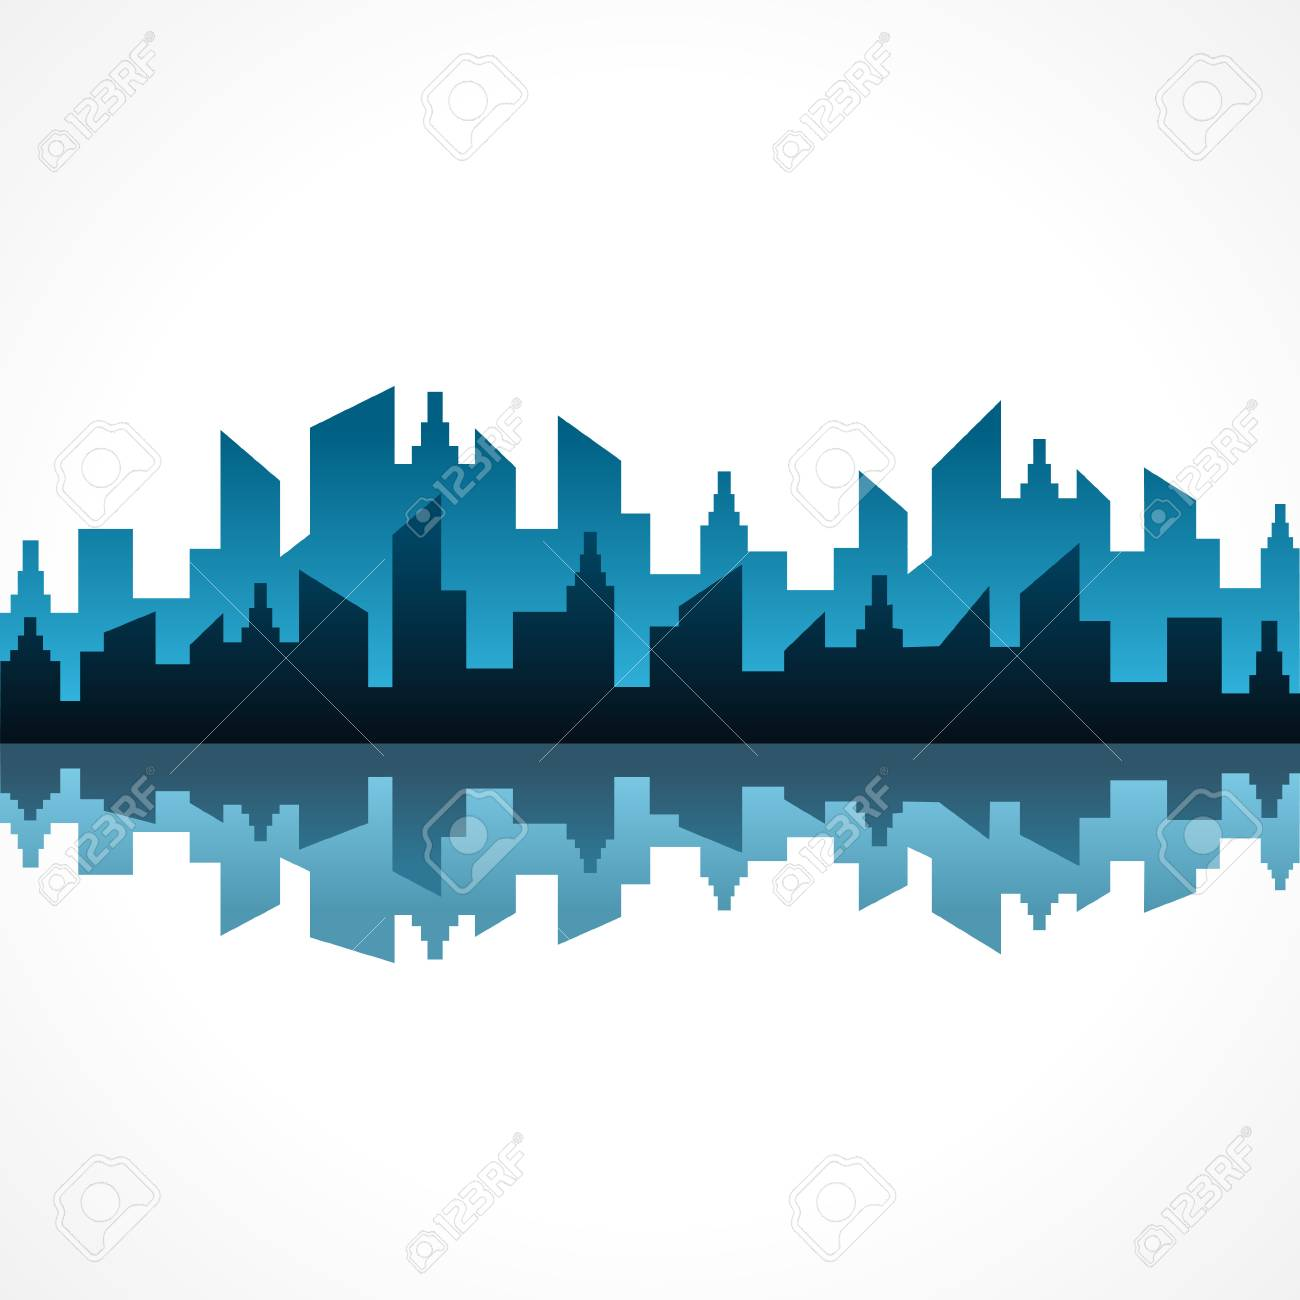 Illustration of abstract blue building design - 22551713